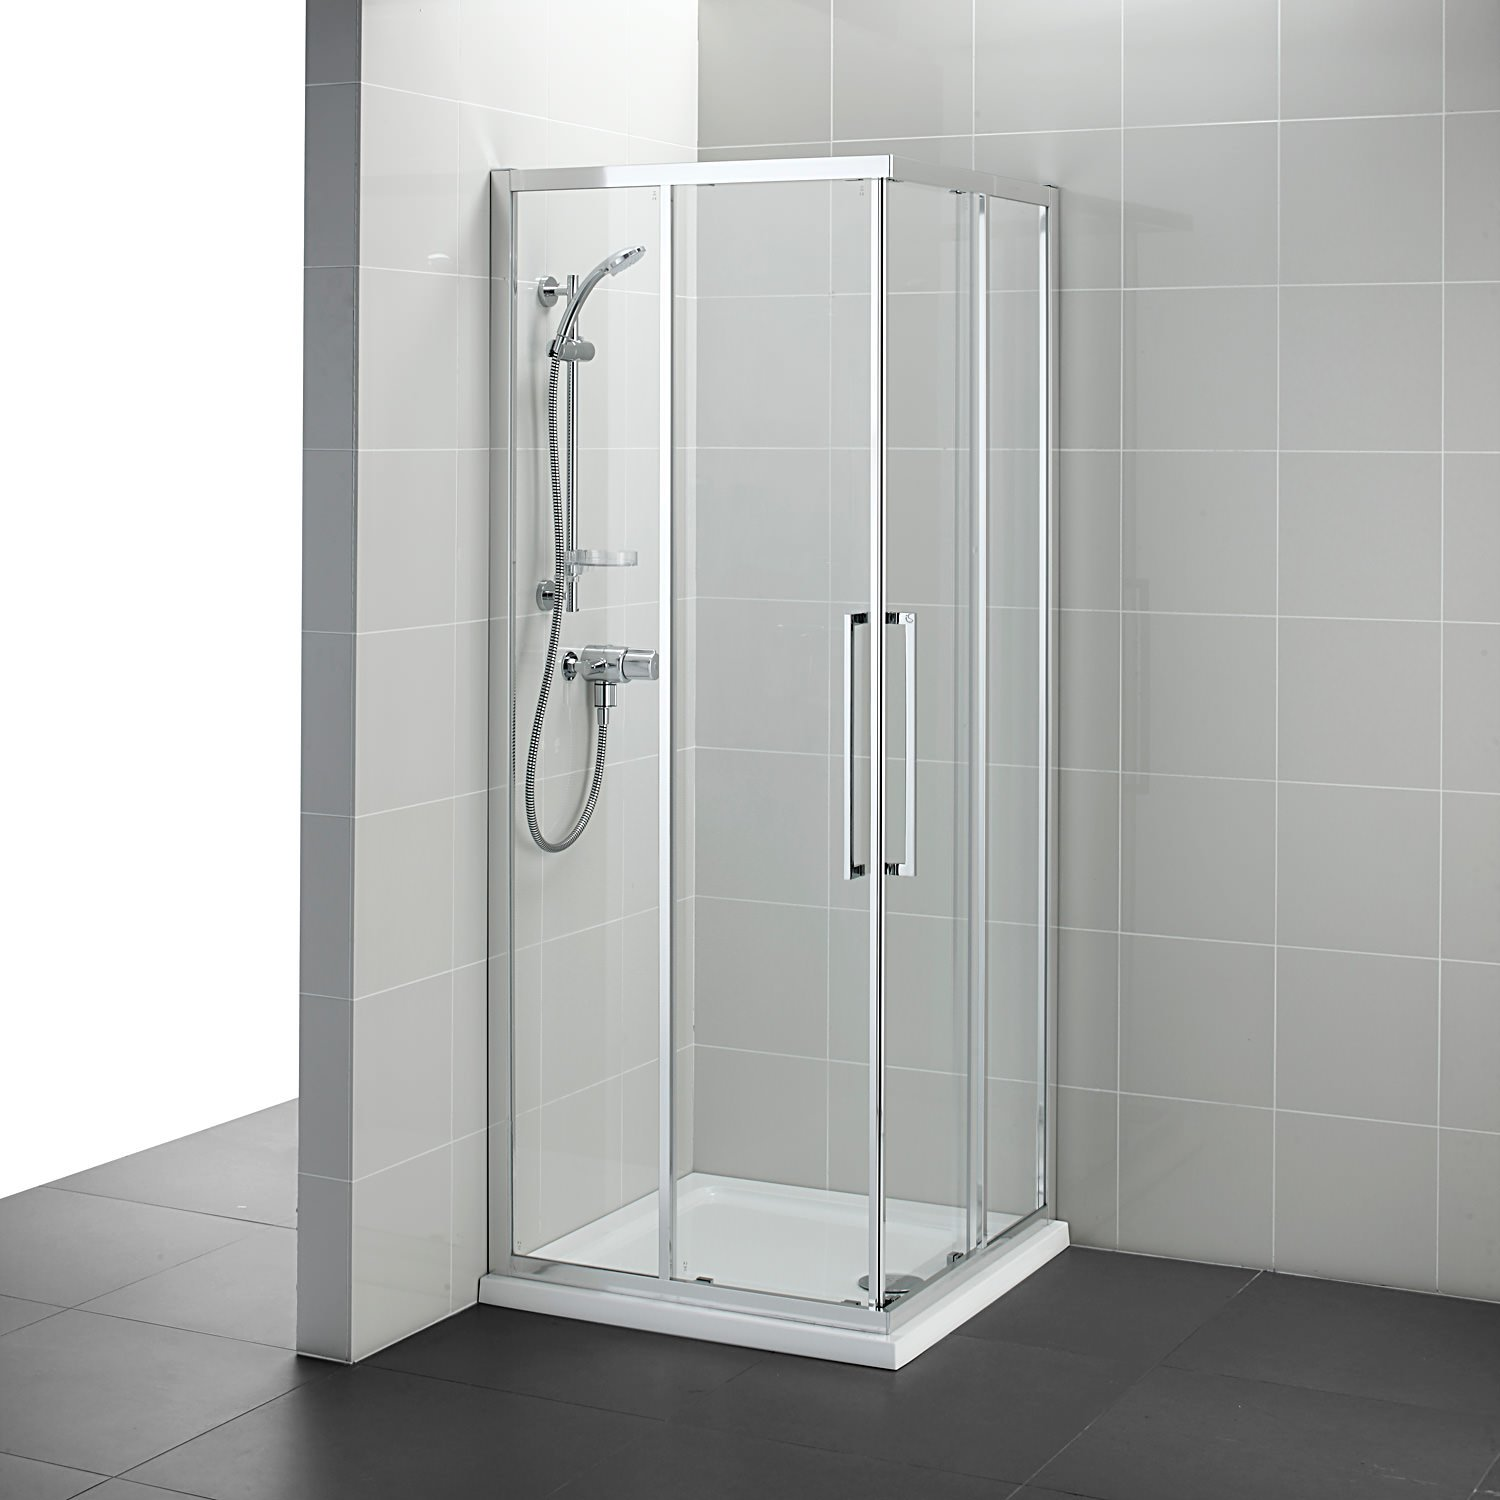 Ideal Standard Kubo 800 X 800mm Corner Entry Shower Enclosure